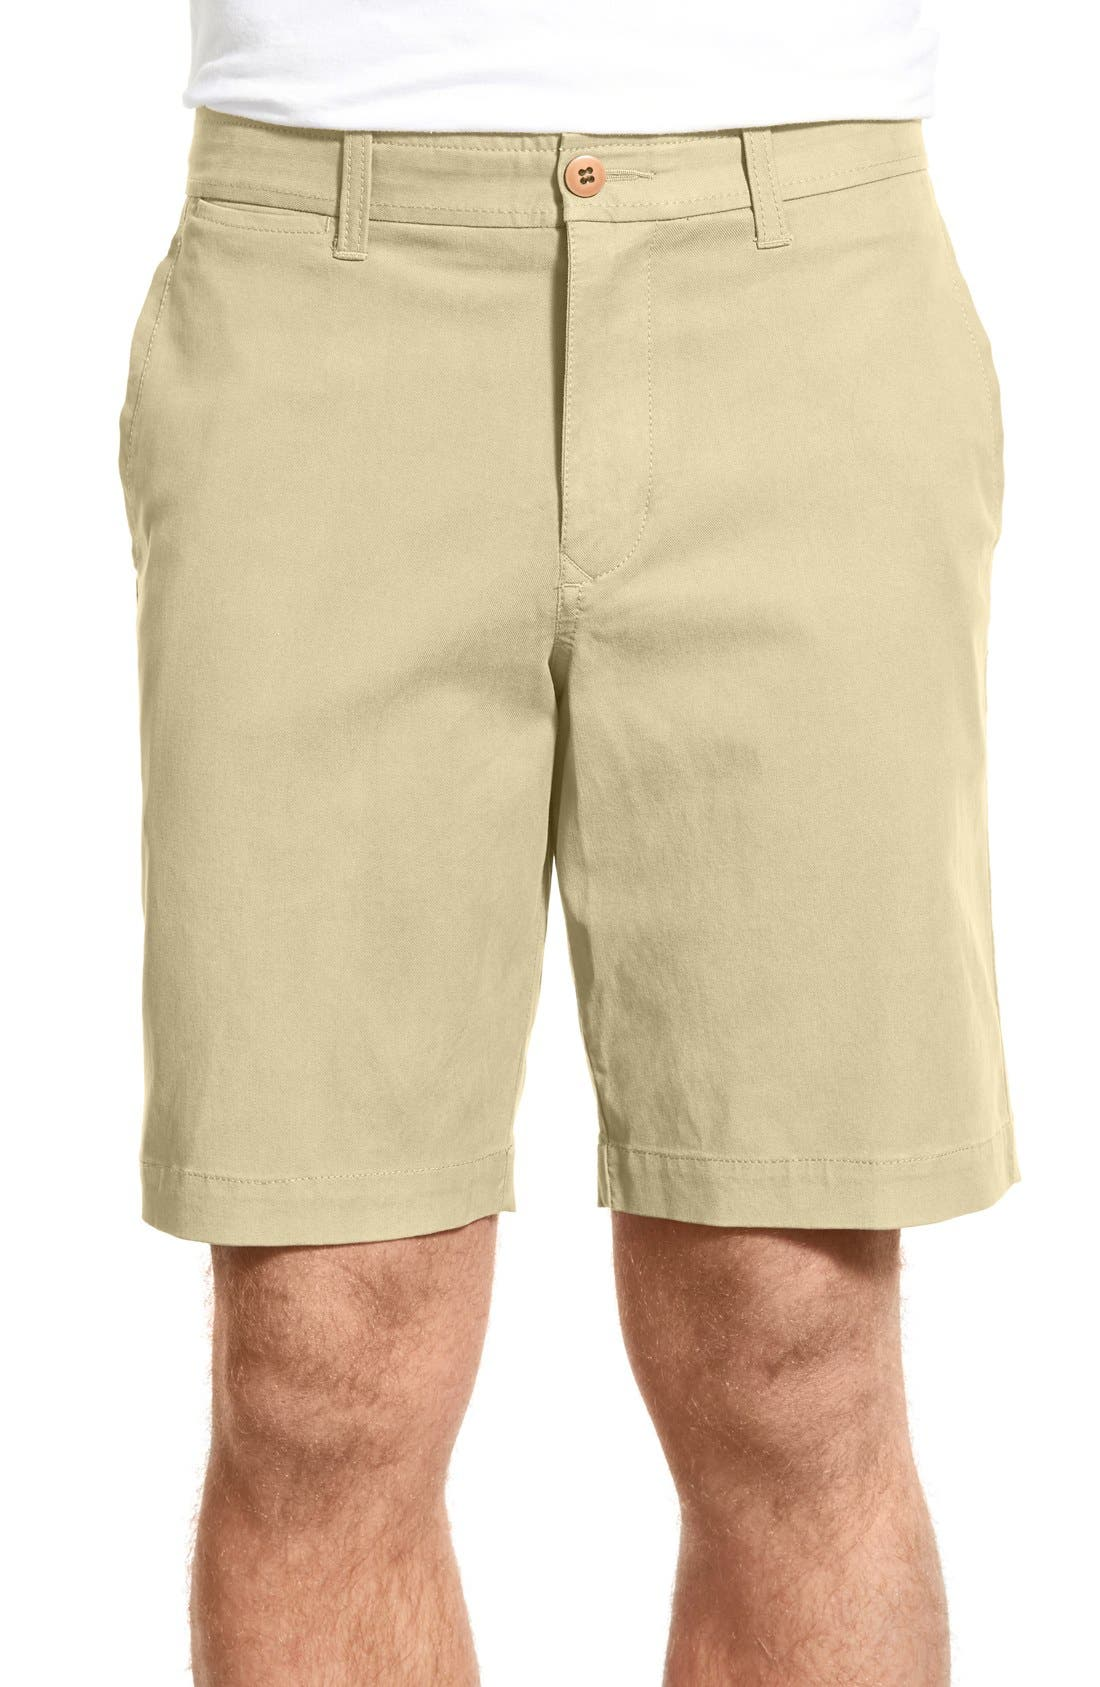 Alternate Image 1 Selected - Tommy Bahama 'Offshore' Flat Front Shorts